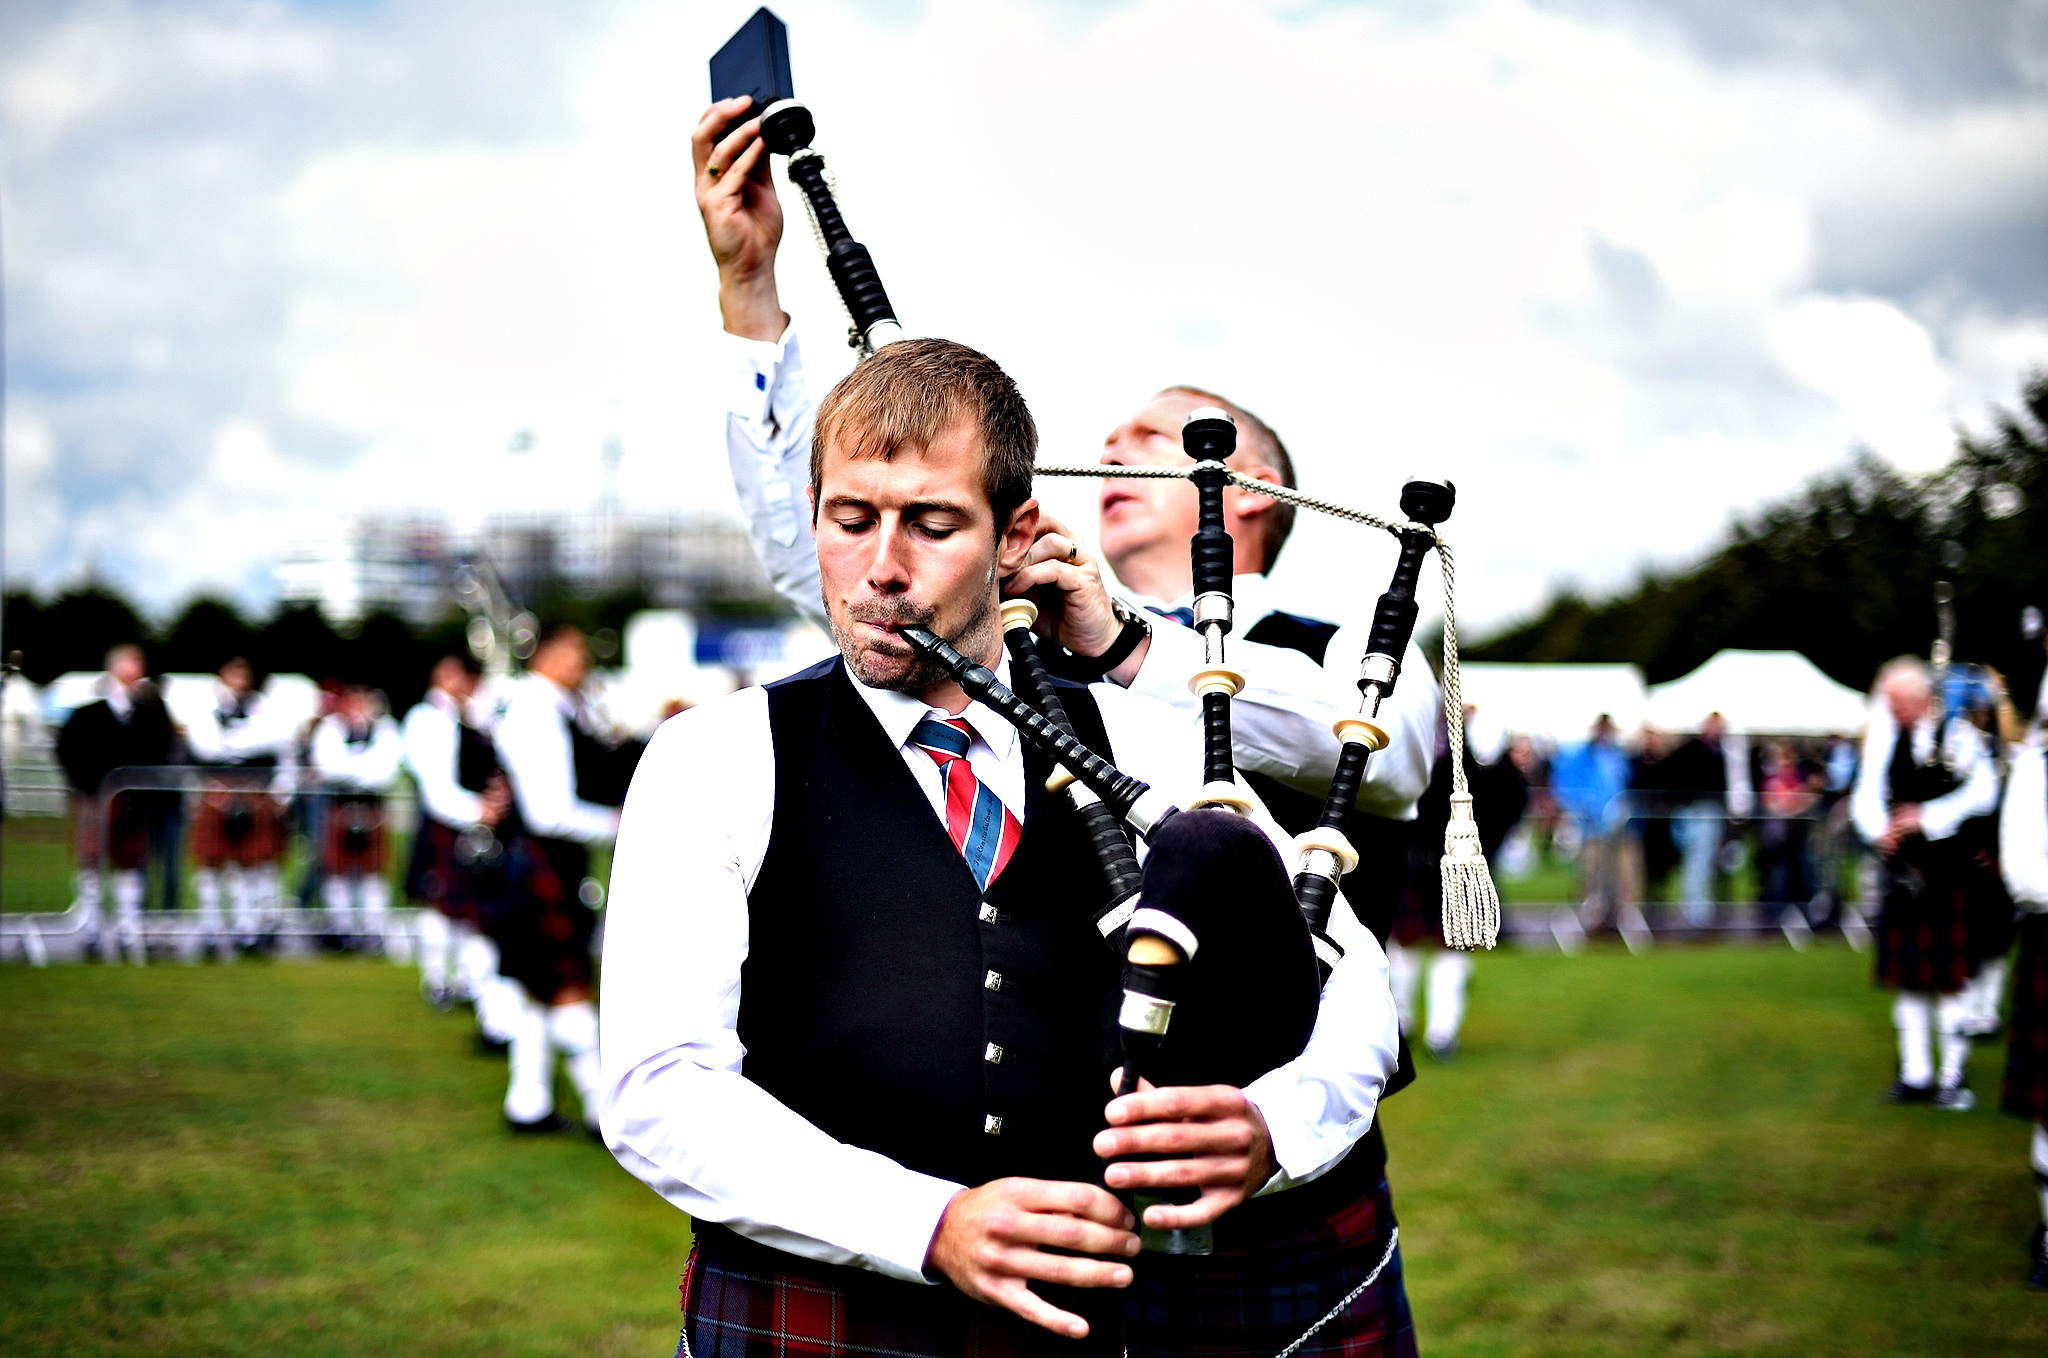 Police Scotland Fife pipe band take part in 2014 World Pipe Band Championships grade one qualifiers at Glasgow Green on August 15, 2014 in Glasgow, Scotland. The annual World Pipe Band Championships has returned to Glasgow this weekend, with a programme that will have 300 performances from 223 pipe bands competing for the title.